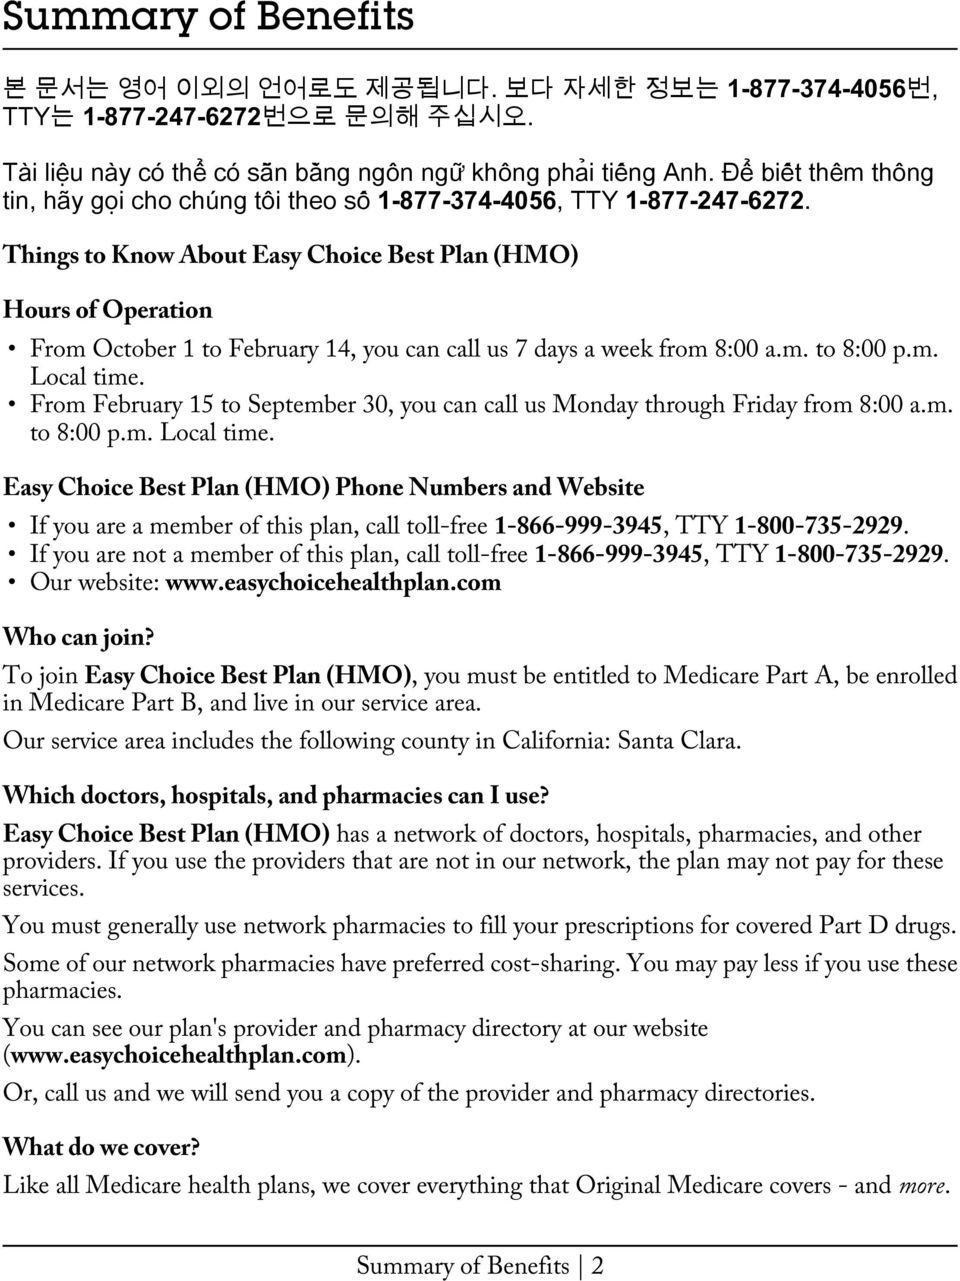 Things to Know About Easy Choice Best Plan (HMO) Hours of Operation 1 From October 1 to February 14, you can call us 7 days a week from 8:00 a.m. to 8:00 p.m. Local time.